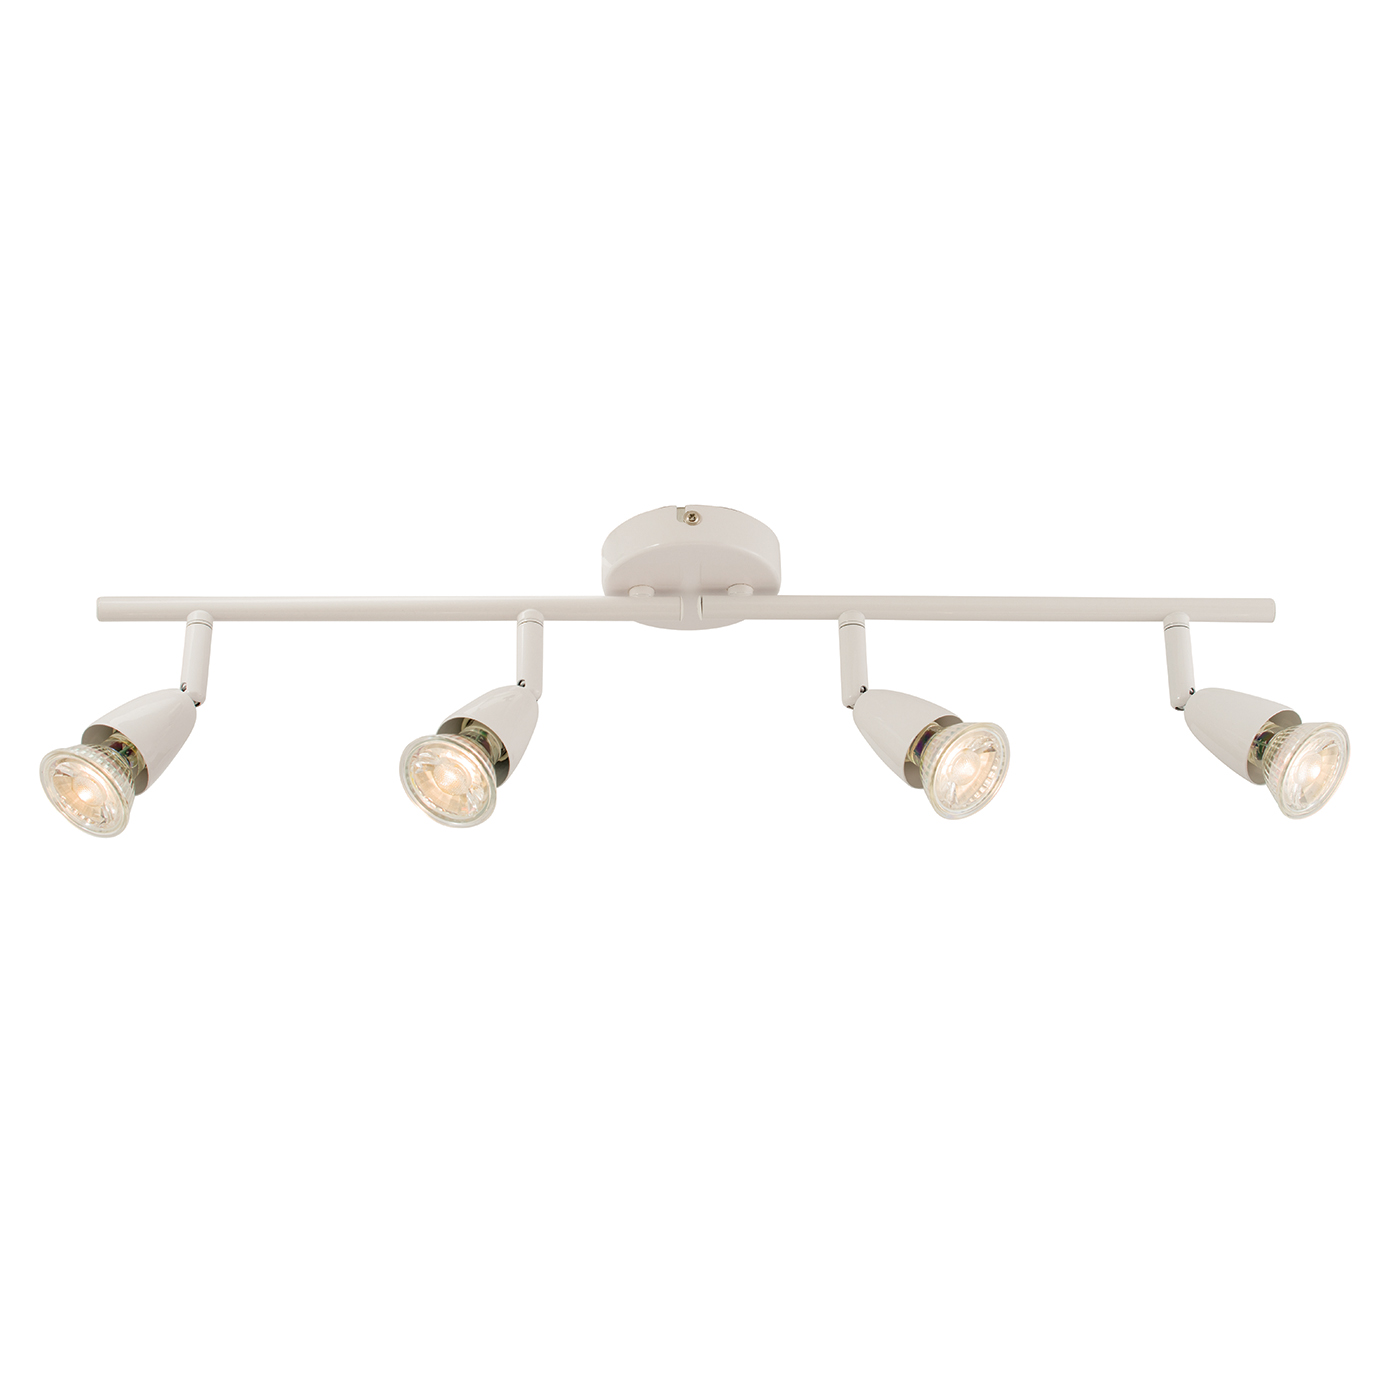 Endon Amalfi ceiling spotlight bar 4x 50W Gloss white